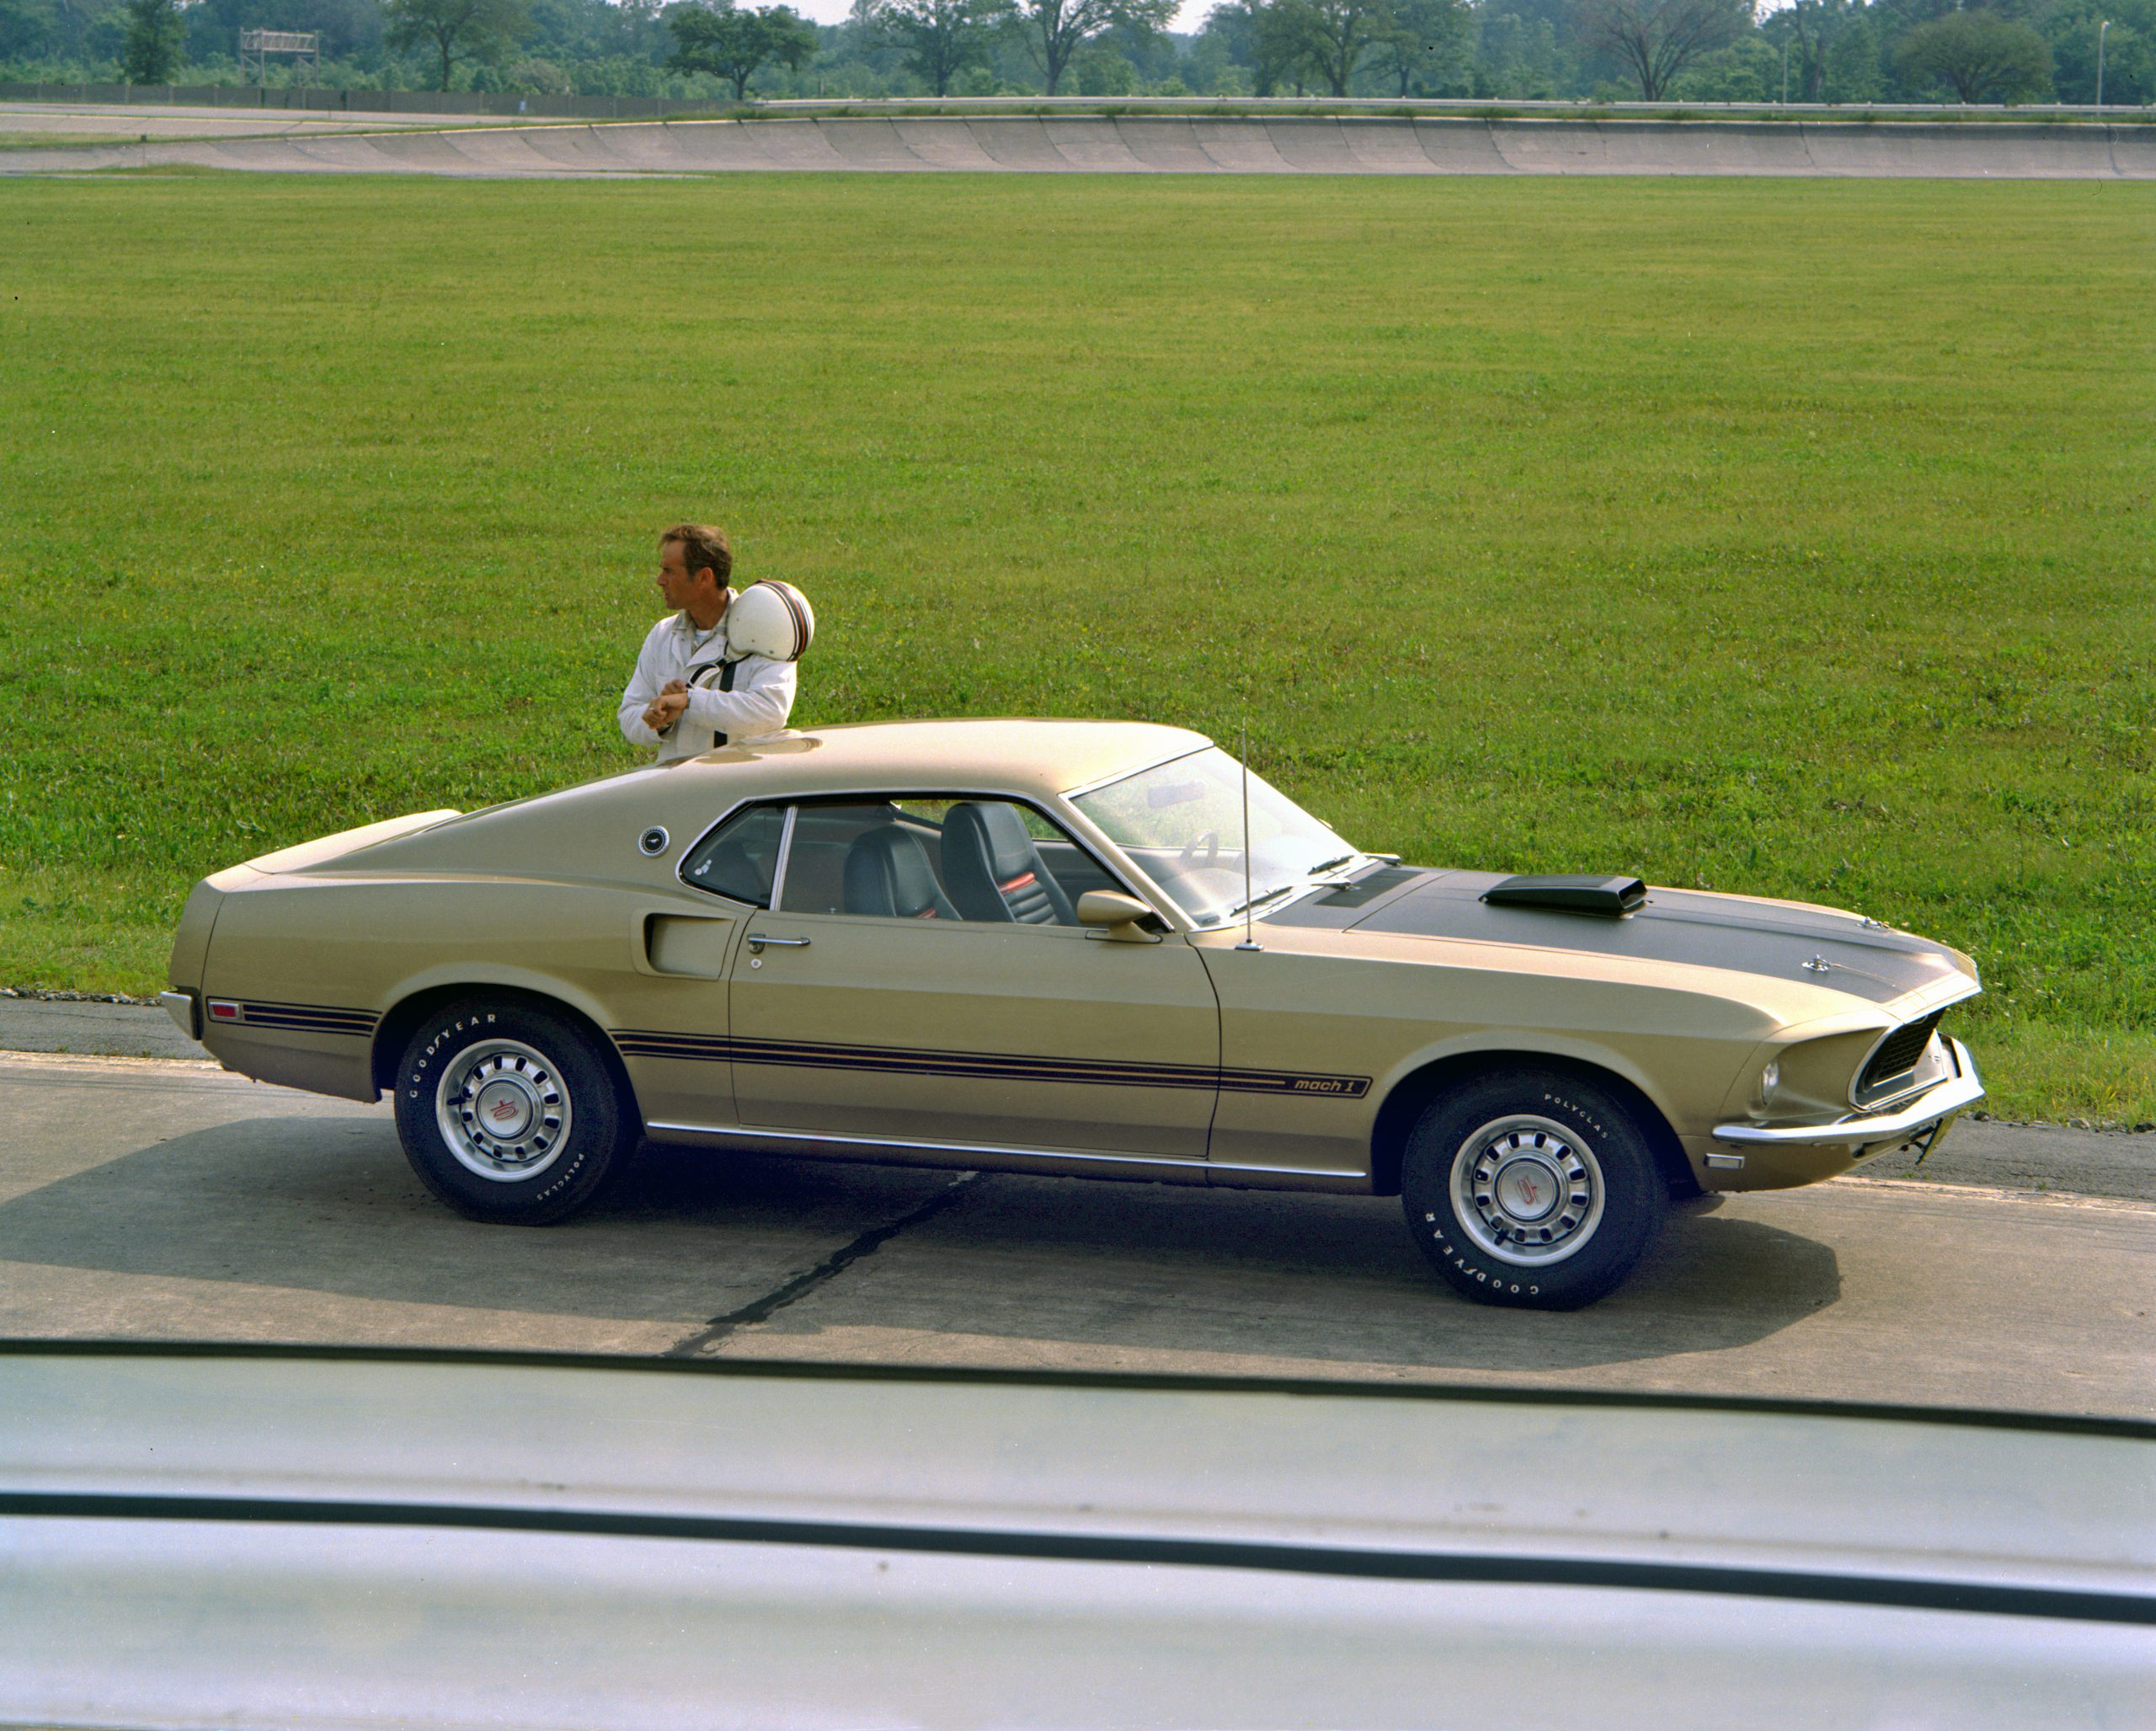 1969 Ford Mustang Mach 1 Fastback Side Profile At Track